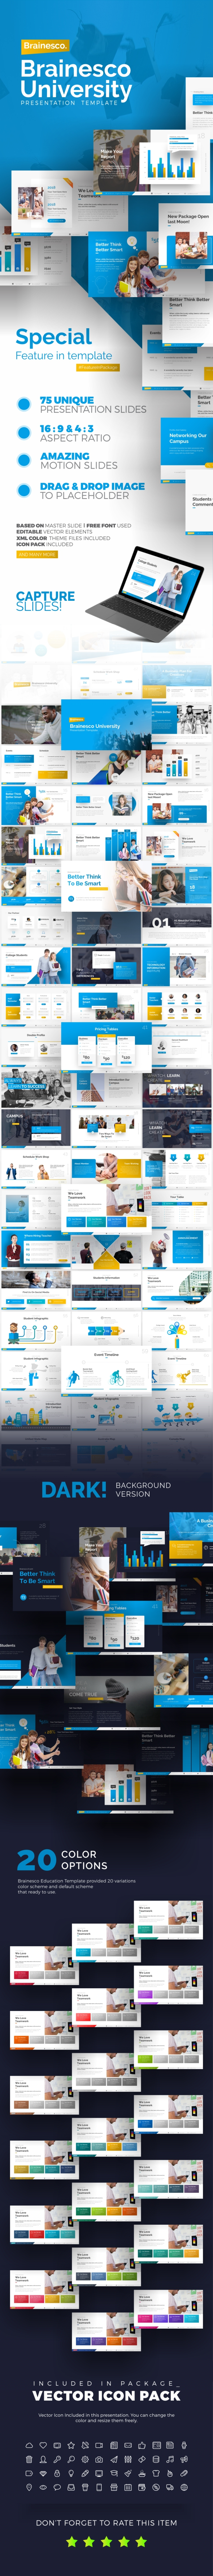 Brainesco Education PowerPoint Presentation Template - PowerPoint Templates Presentation Templates